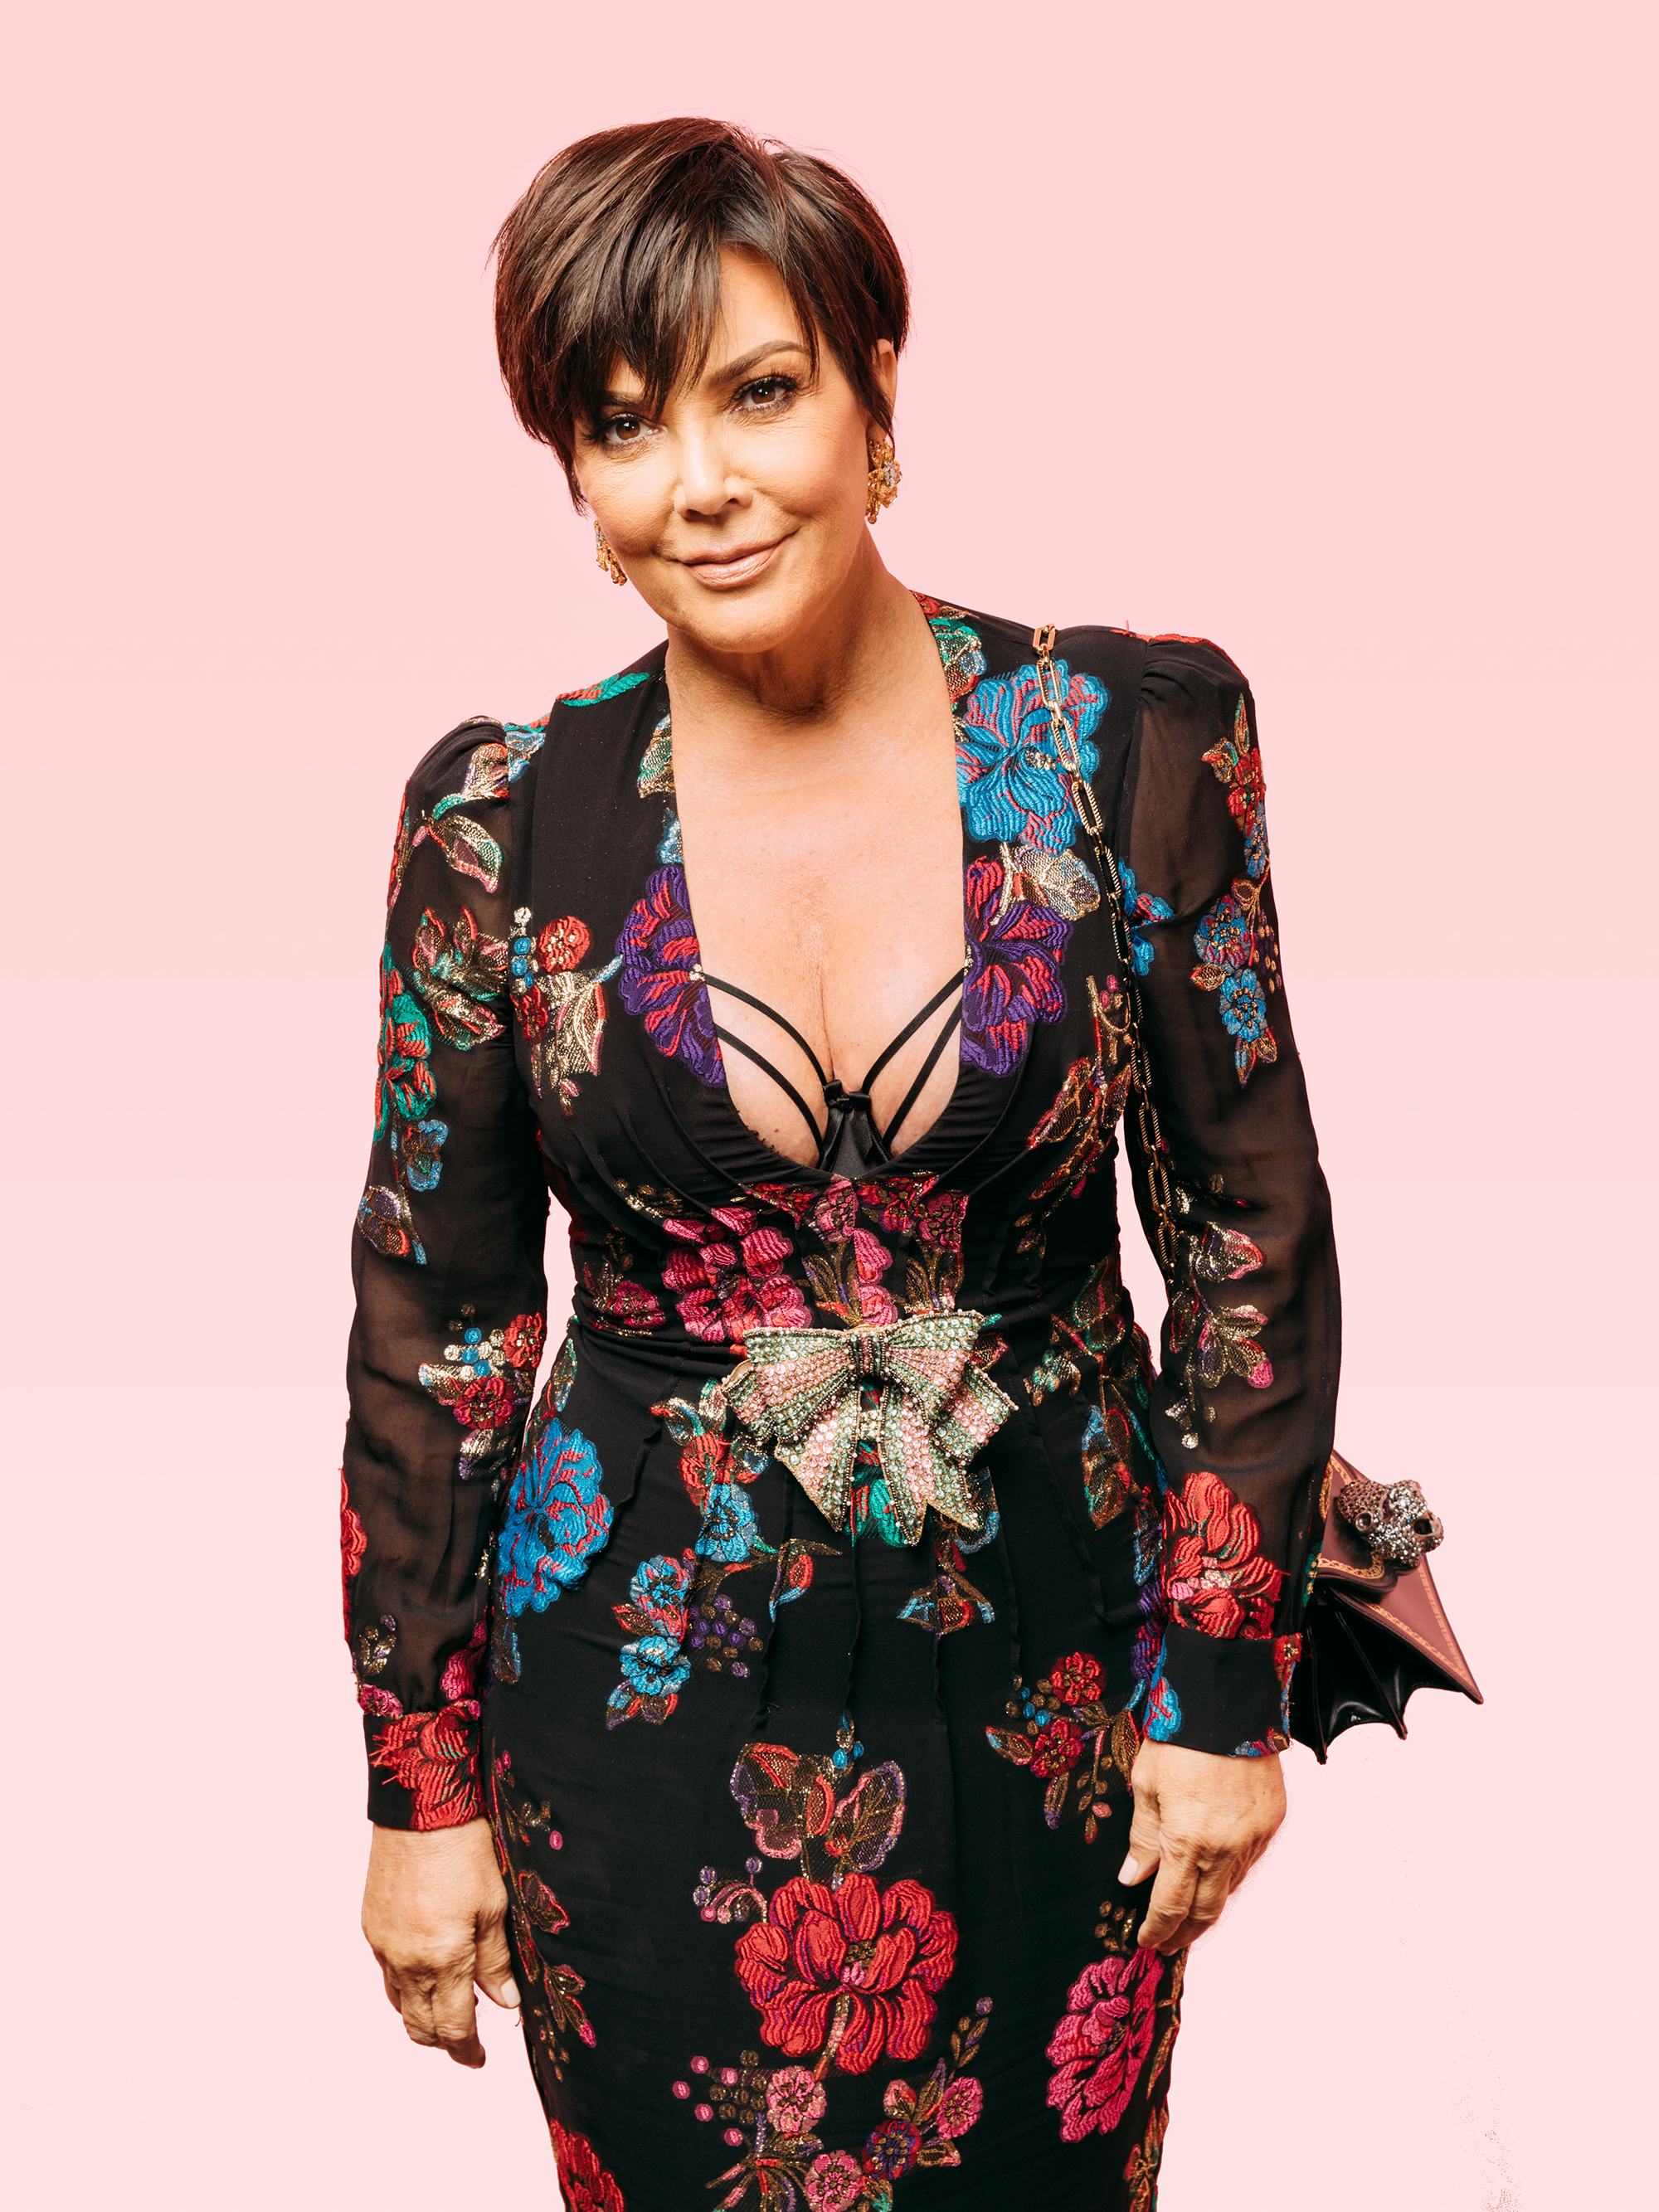 kris jenner u0027s version of camping is the only acceptable camping